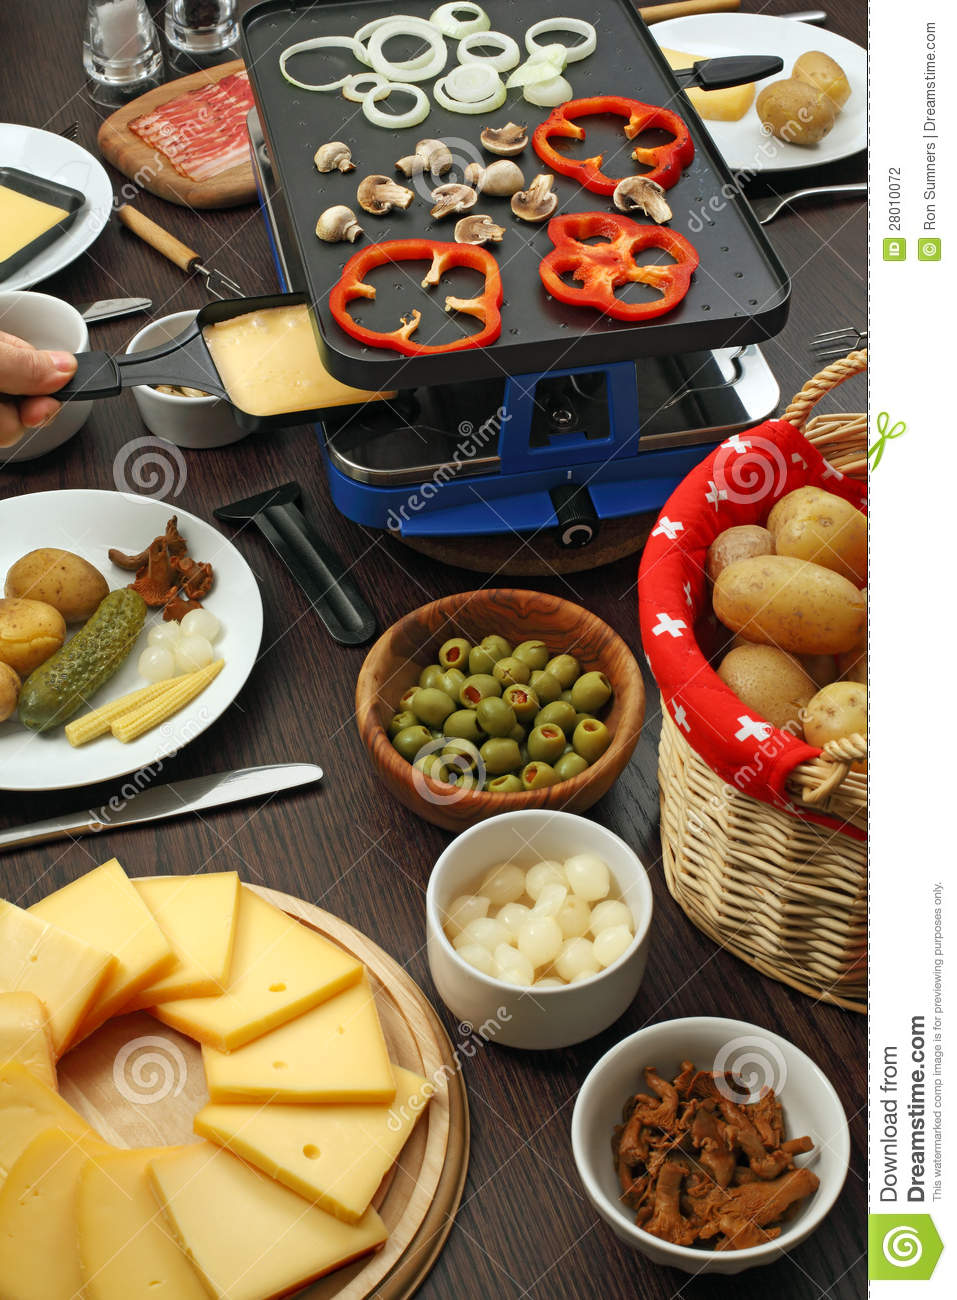 raclette dinner stock photo image of culture potato. Black Bedroom Furniture Sets. Home Design Ideas